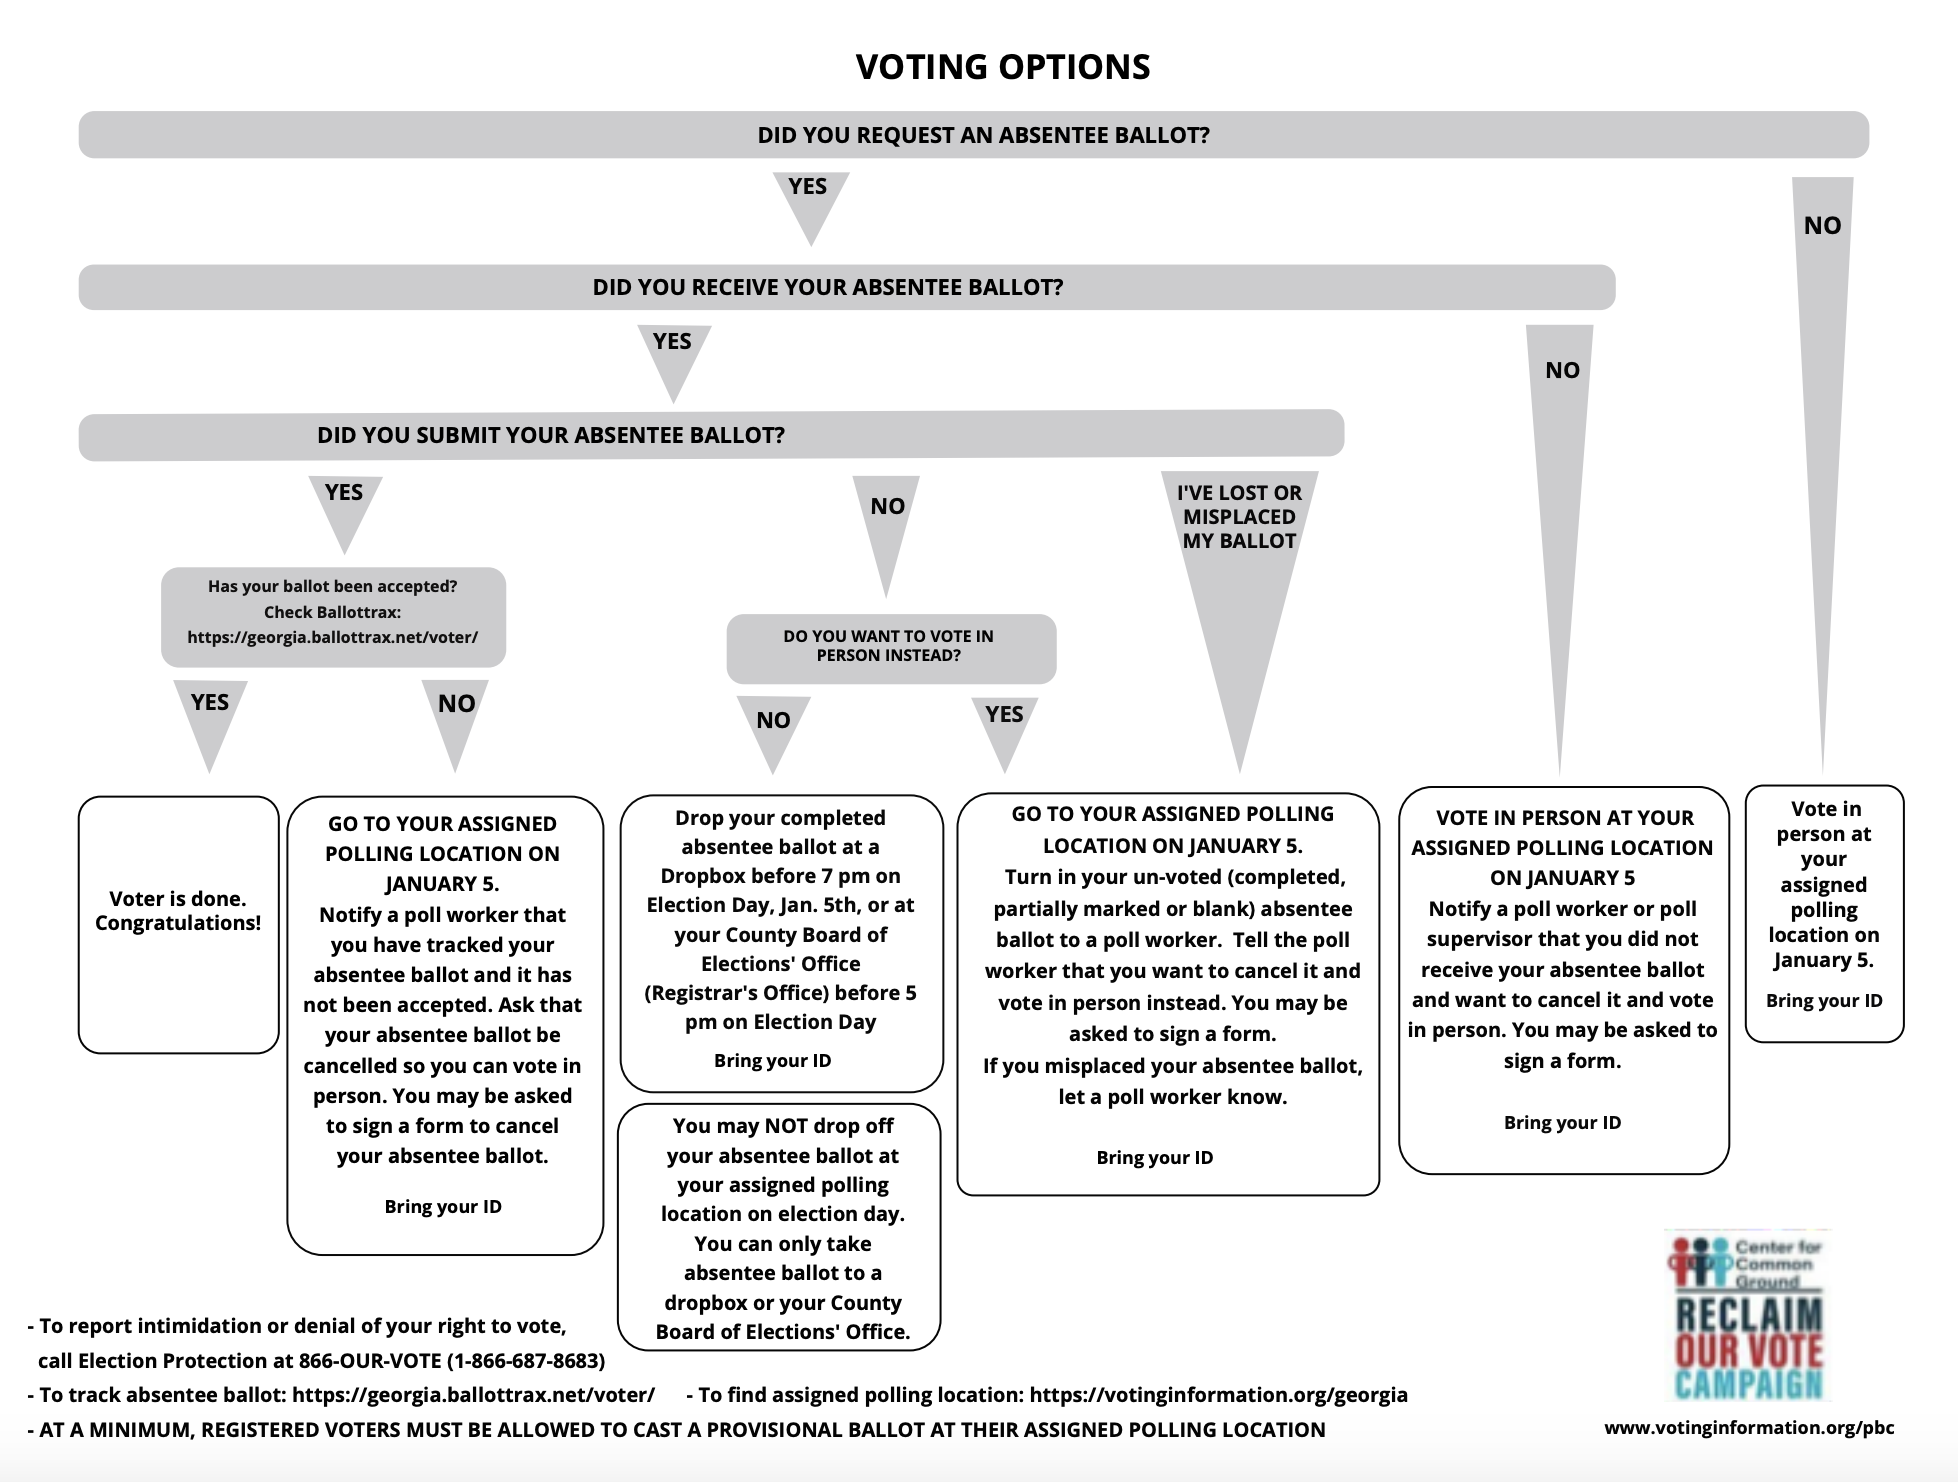 Voting options guide for Georgia Voters from Reclaim Our Vote.